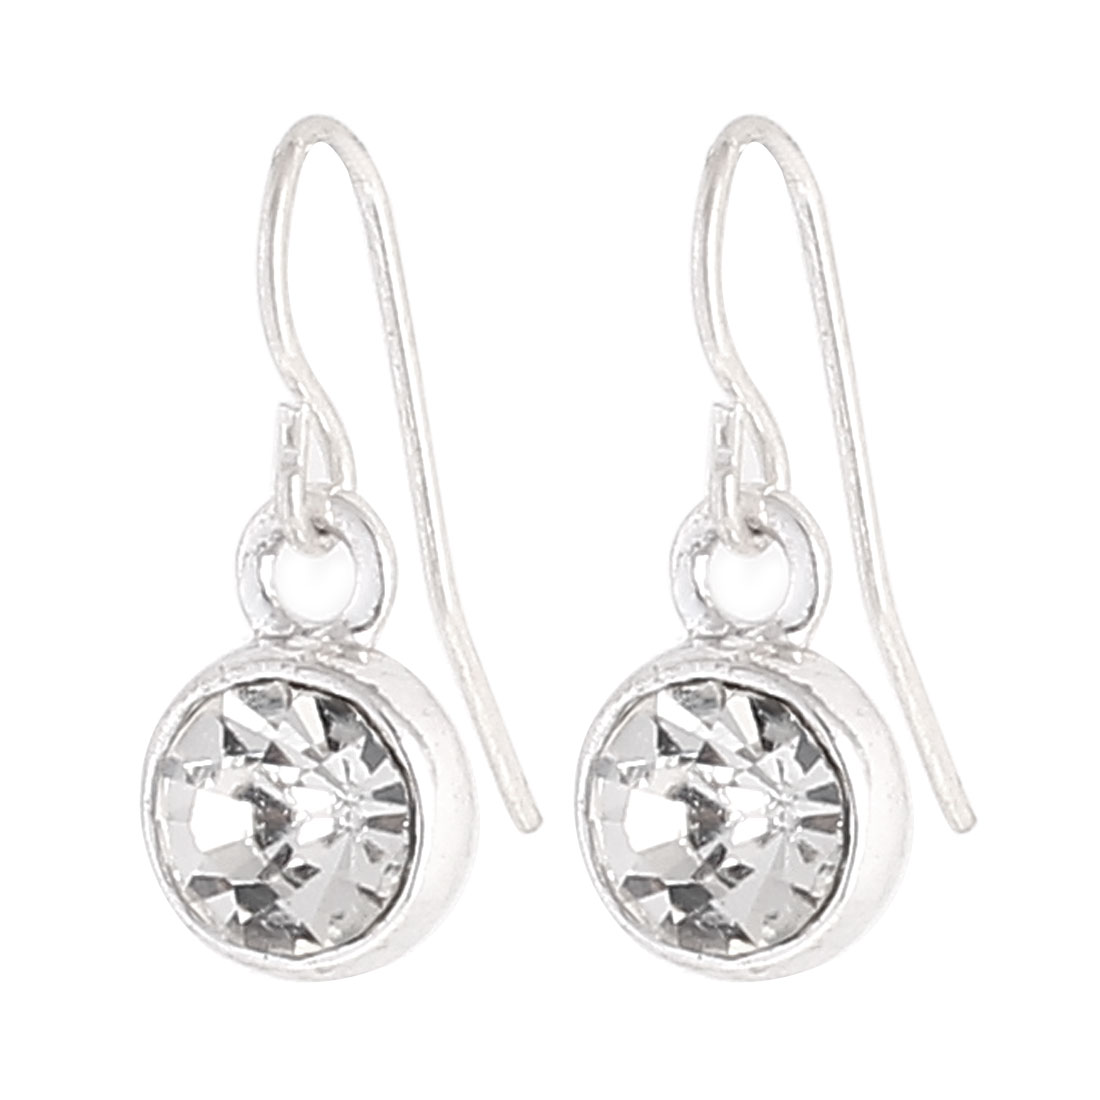 """Woman Faux Crystal Inlaid Round Circle Shape Dangling Pendant Metal Fish Hook Earrings Earbob Sillver Tone 0.8"""" Length Pair"""